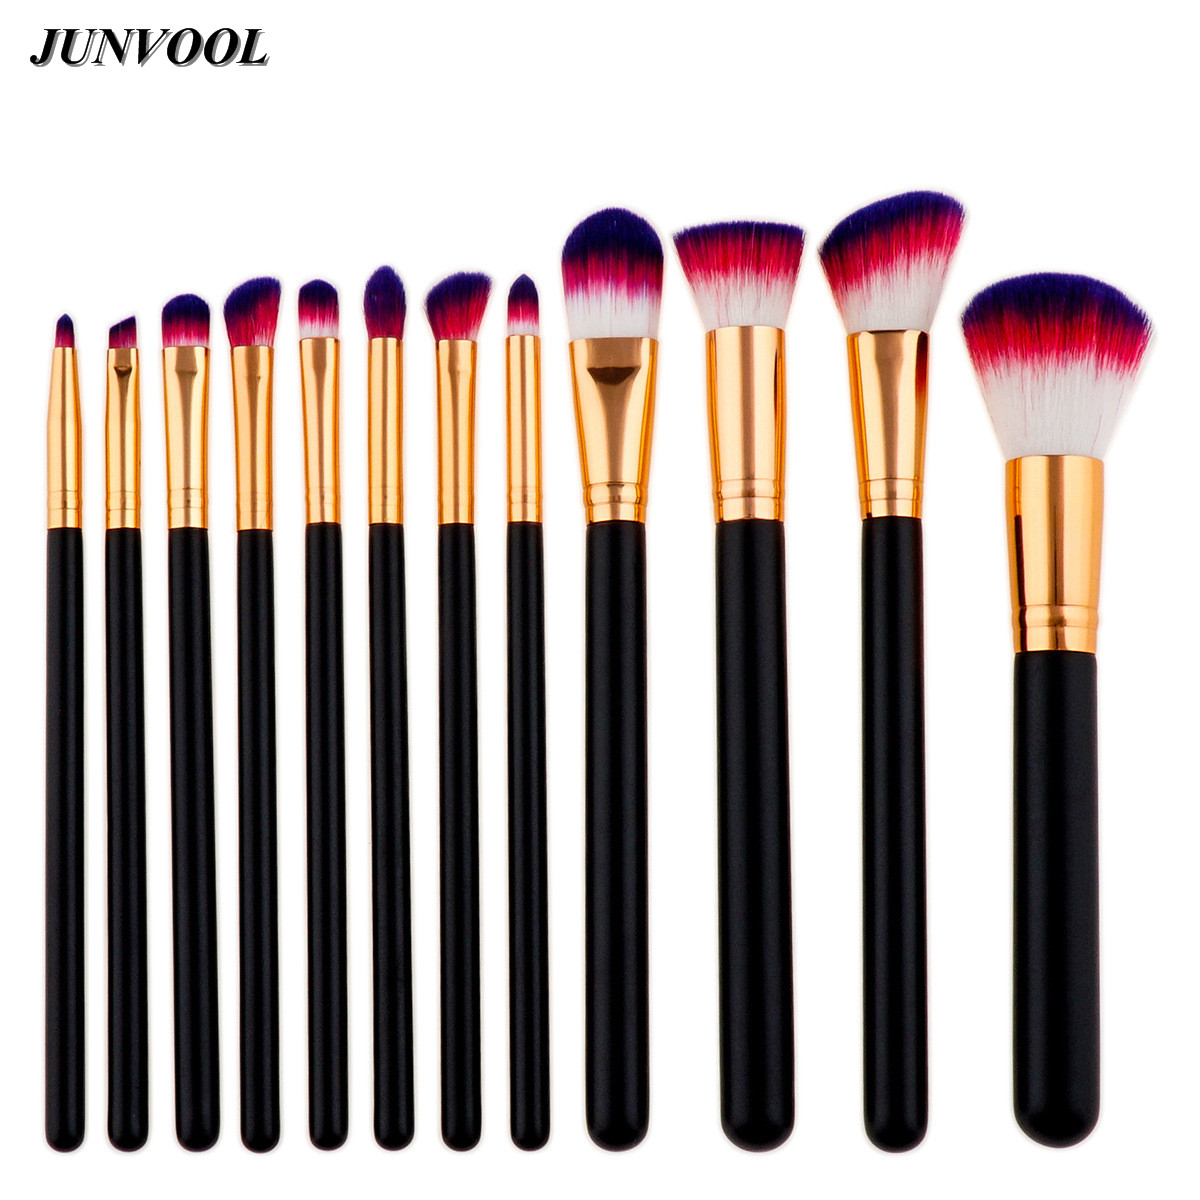 Black Rose Golden Makeup Brush 12Pcs Cosmetics Foundation Blending Blush Make Up Tool Red Hair Powder Eyeshadow Cosmetic Brushes acevivi professional oval shape makeup rose golden color brushes cosmetic make up brush tool set foundation powder brush kits